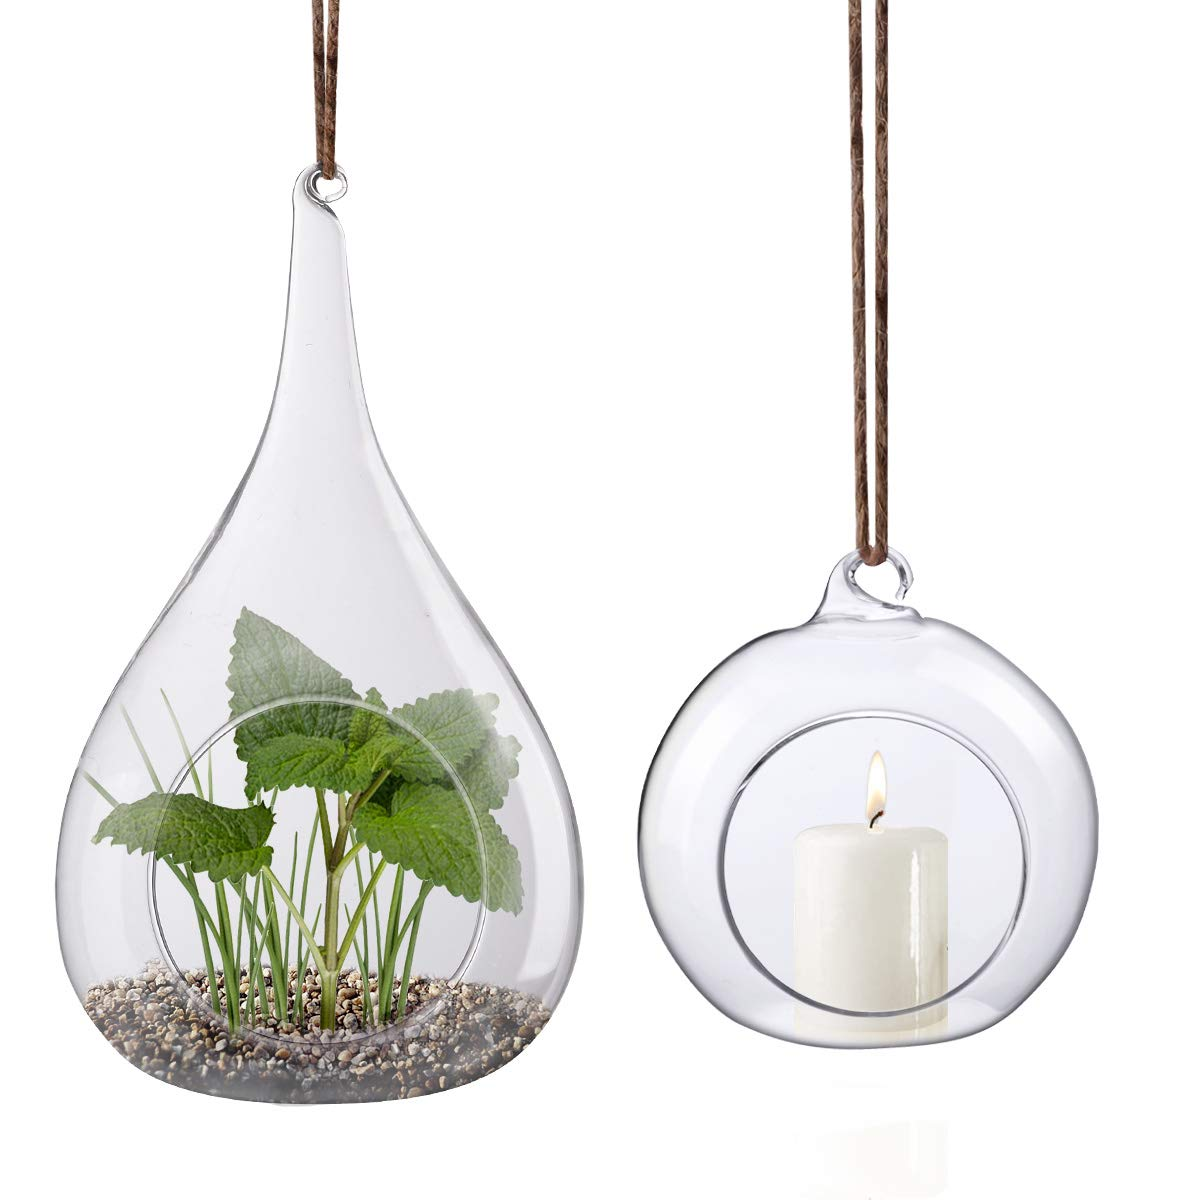 2 FANCIFUL TERRARIUMS TO HANG & PLANT